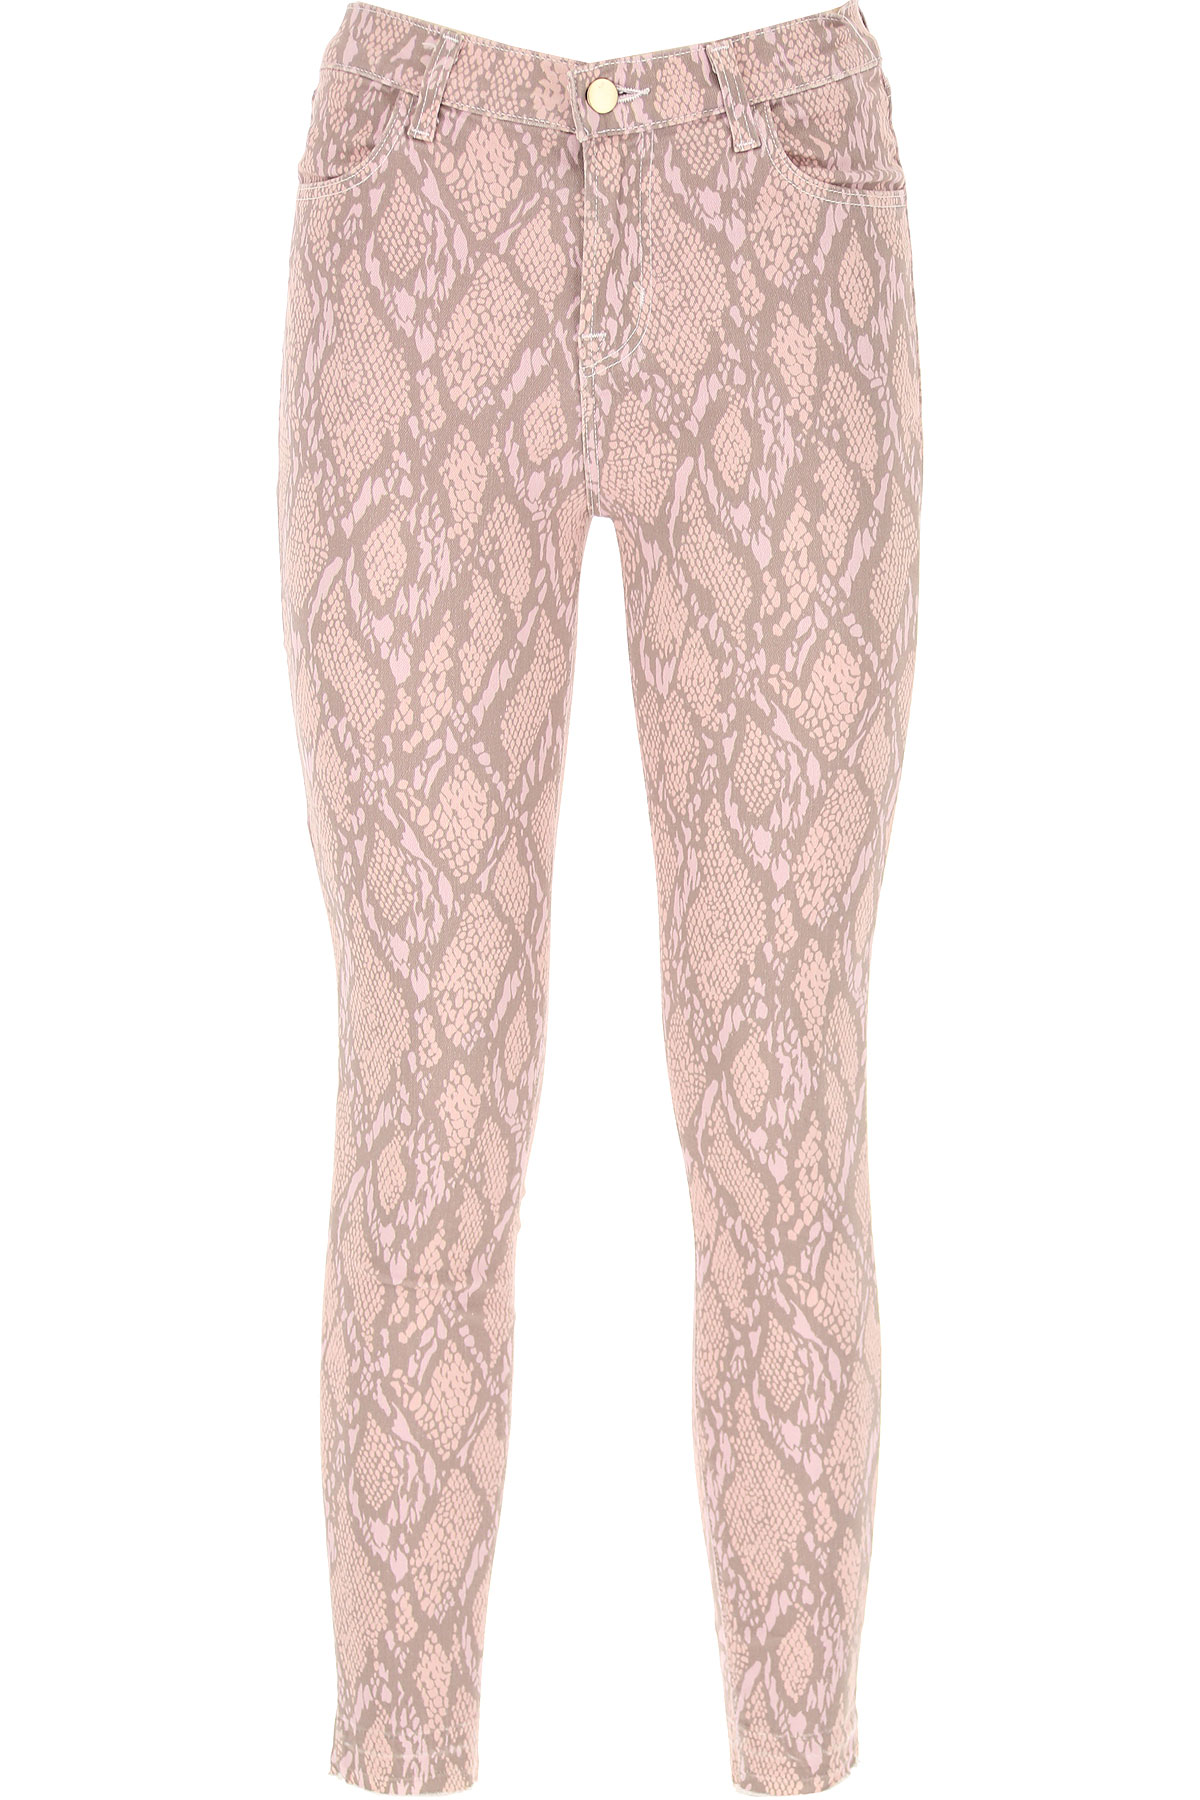 J Brand Jeans On Sale in Outlet, Pink, Cotton, 2019, 25 26 27 28 29 30